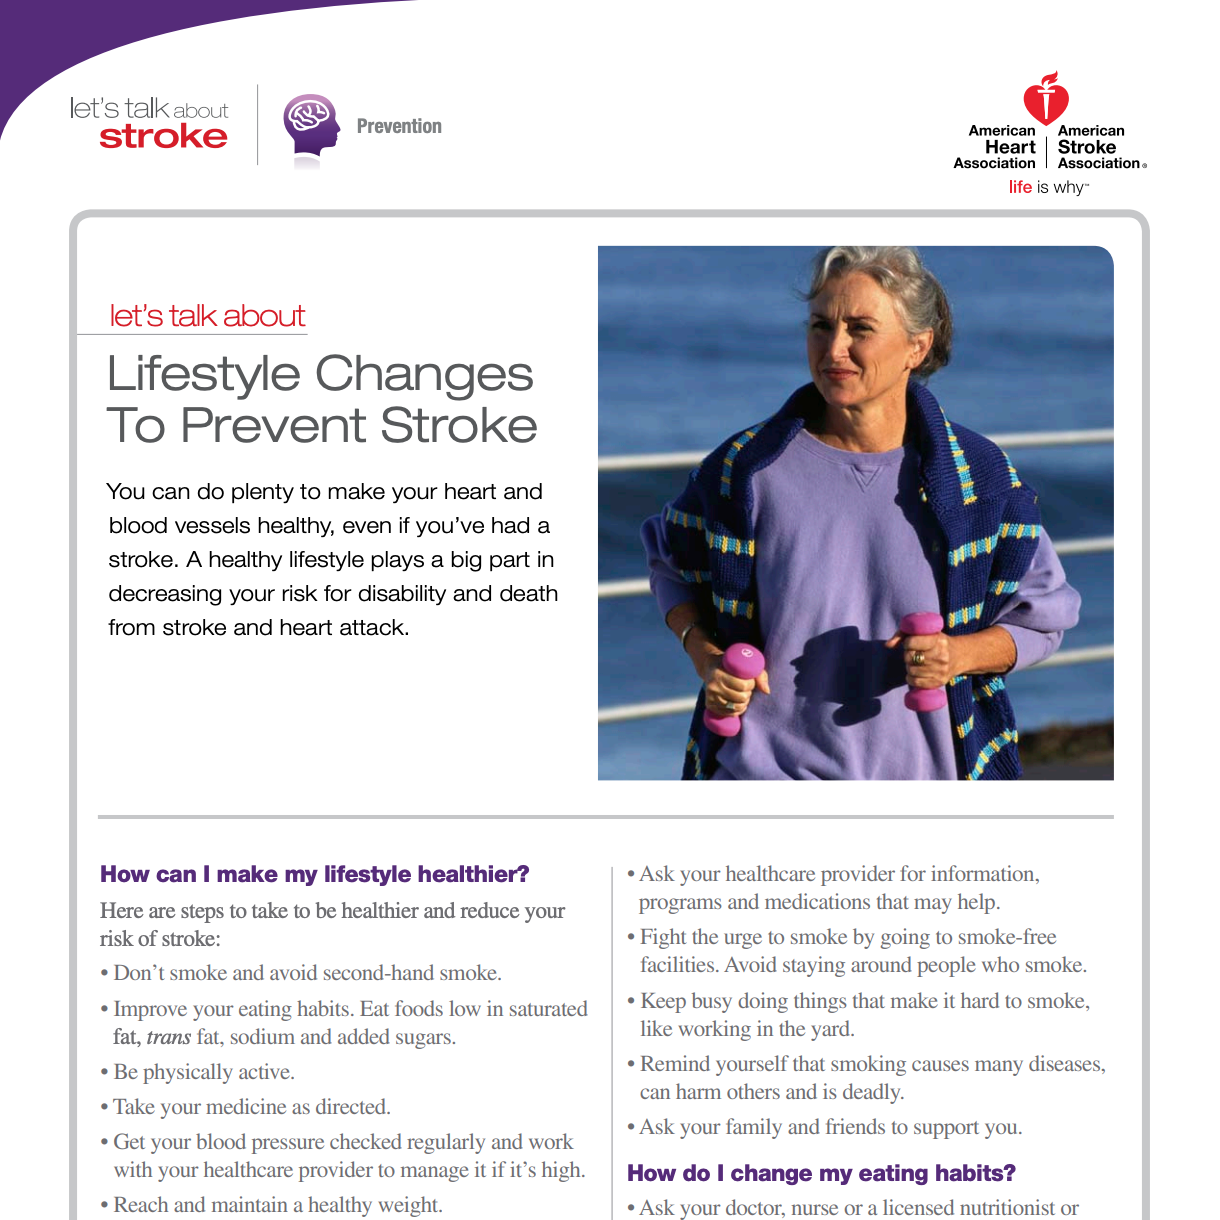 Lifestyle Changes to Prevent Stroke